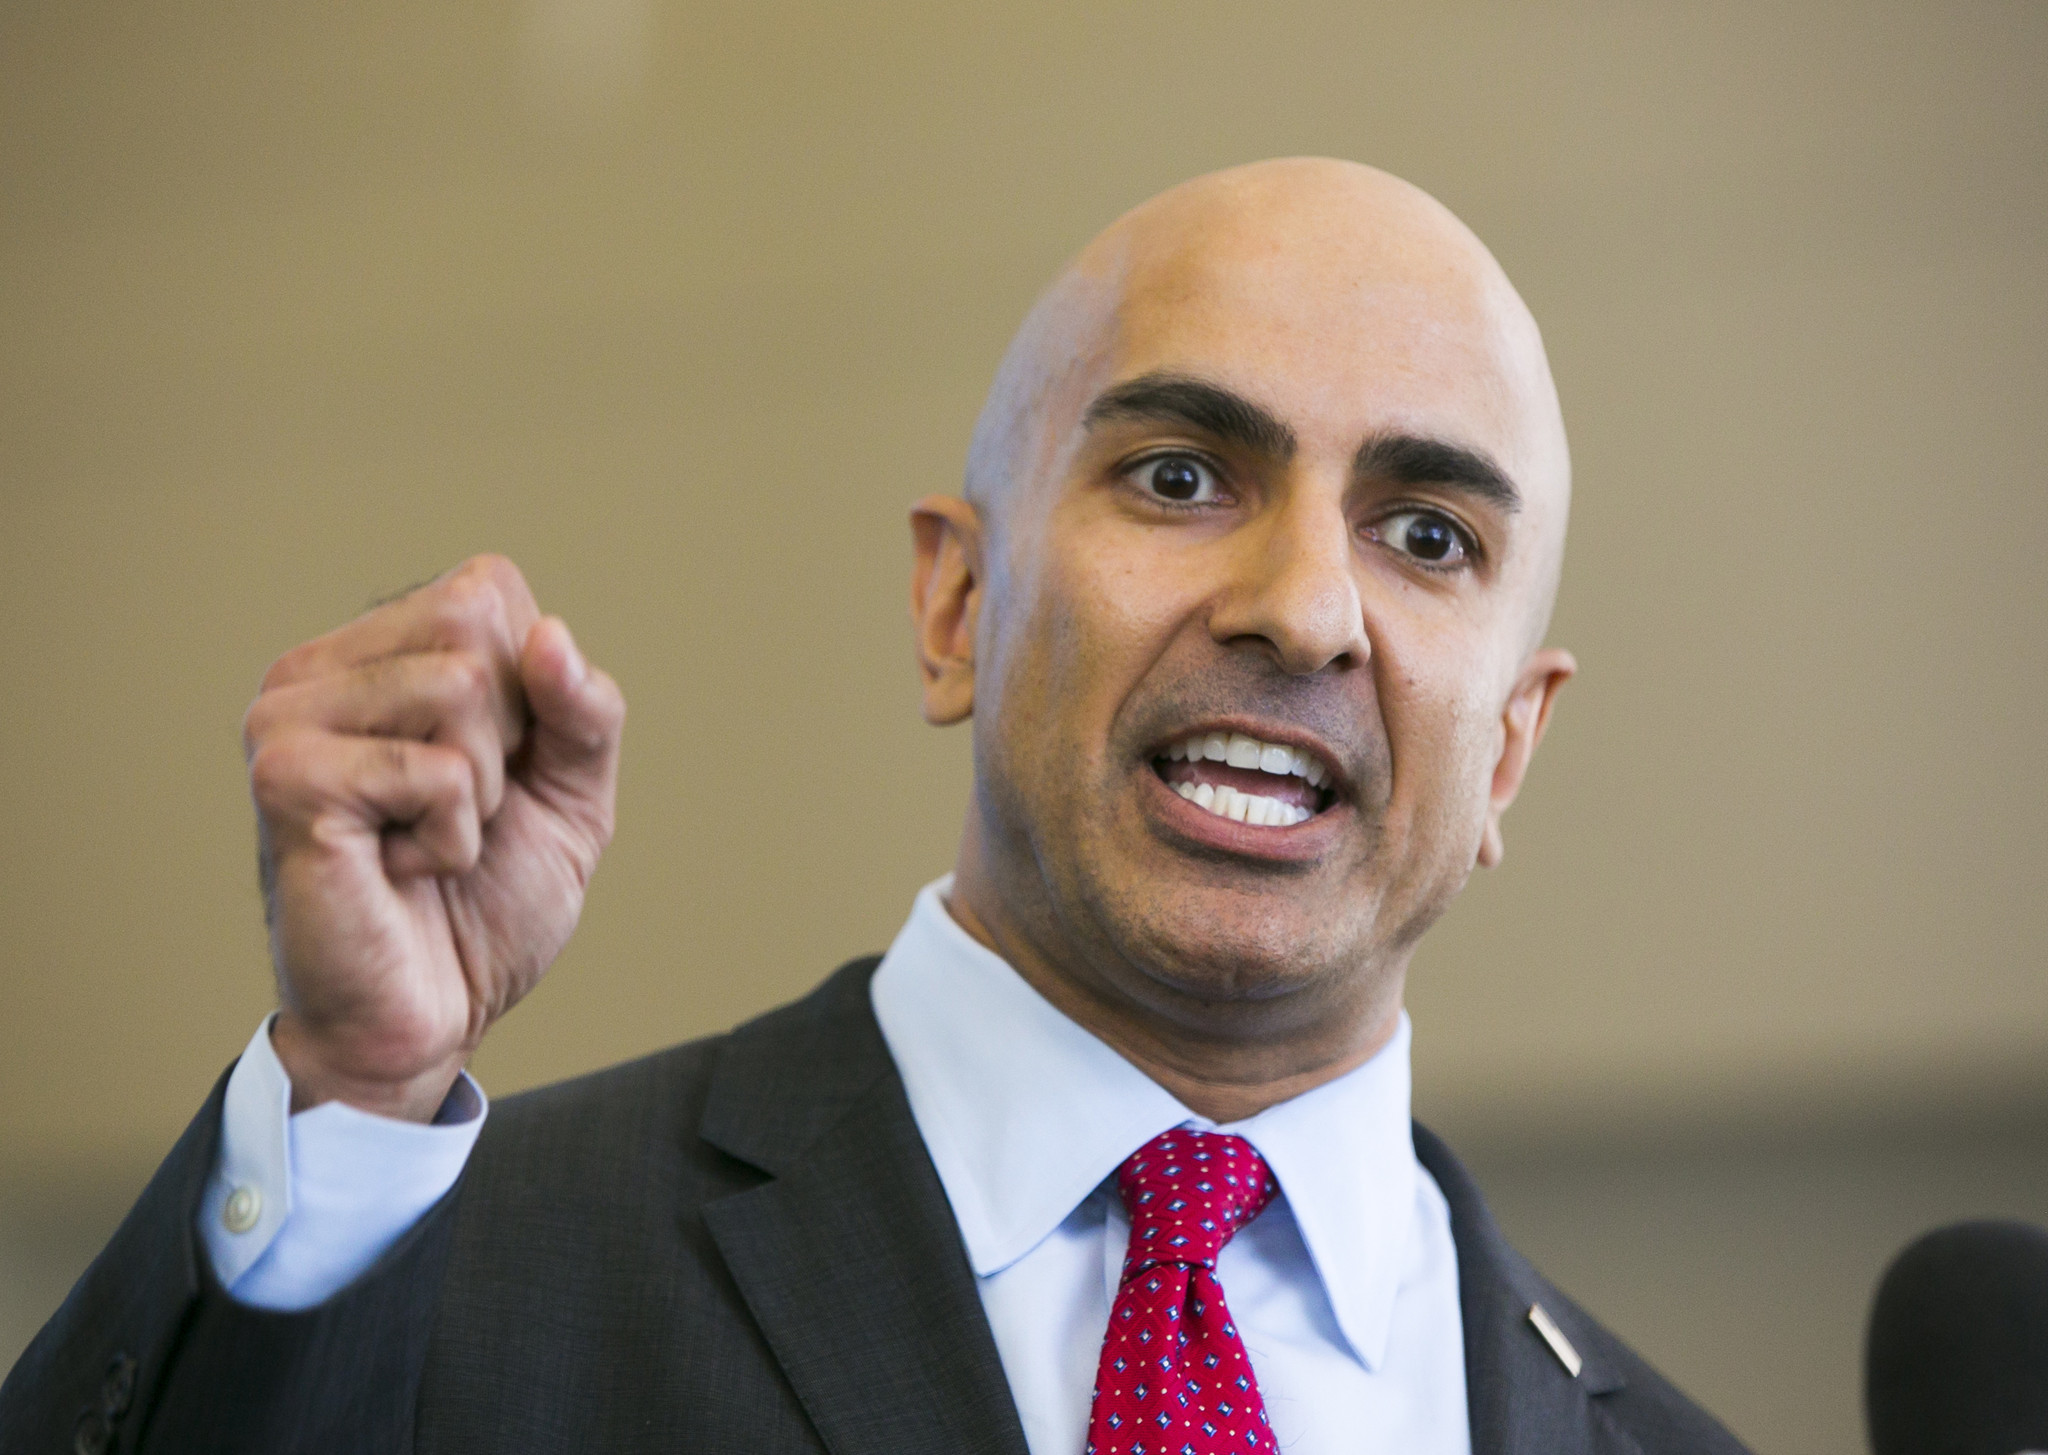 Poll says Gov. Brown has nearly 20-point lead over challenger Kashkari